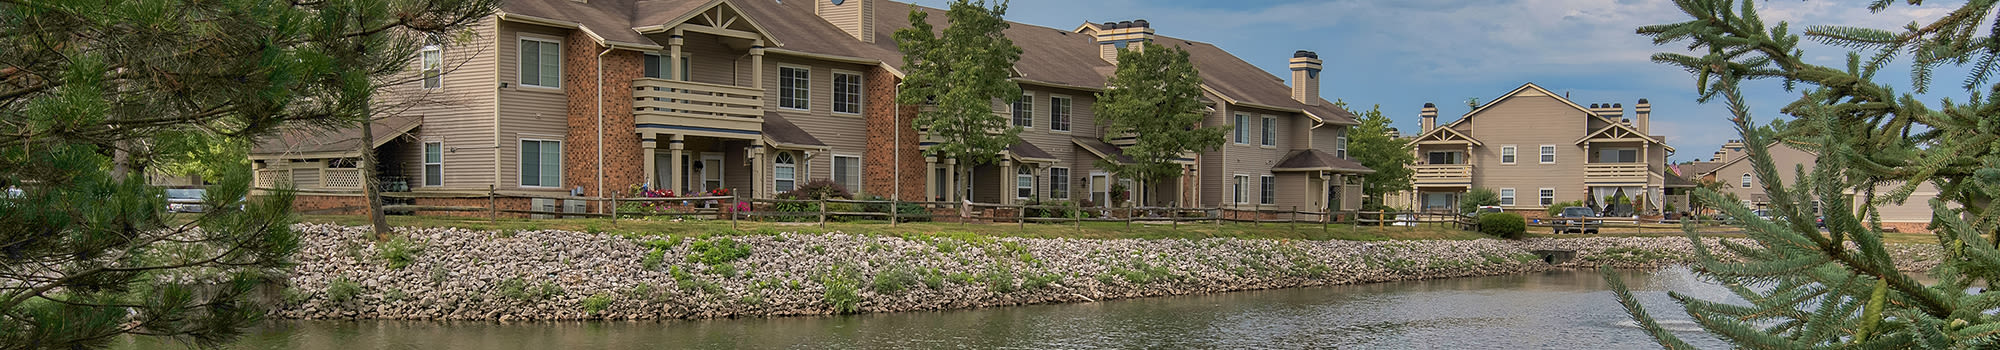 Perry's Crossing Apartments offers a great neighborhood to its residents